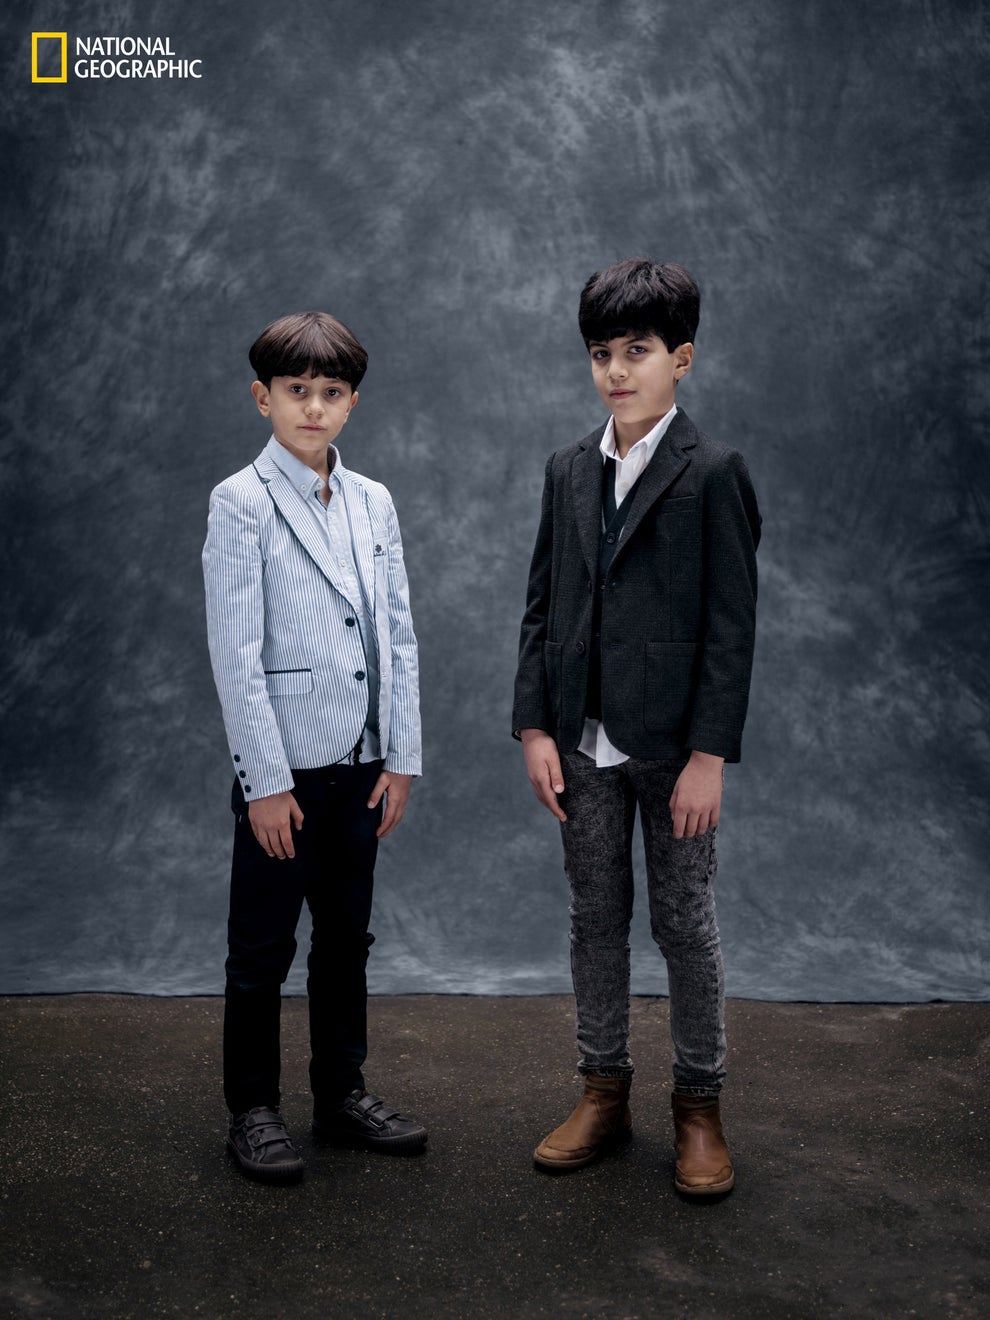 2. Ilyas (left) and Massyle Mouzaoui, ages 8 and10, Paris.